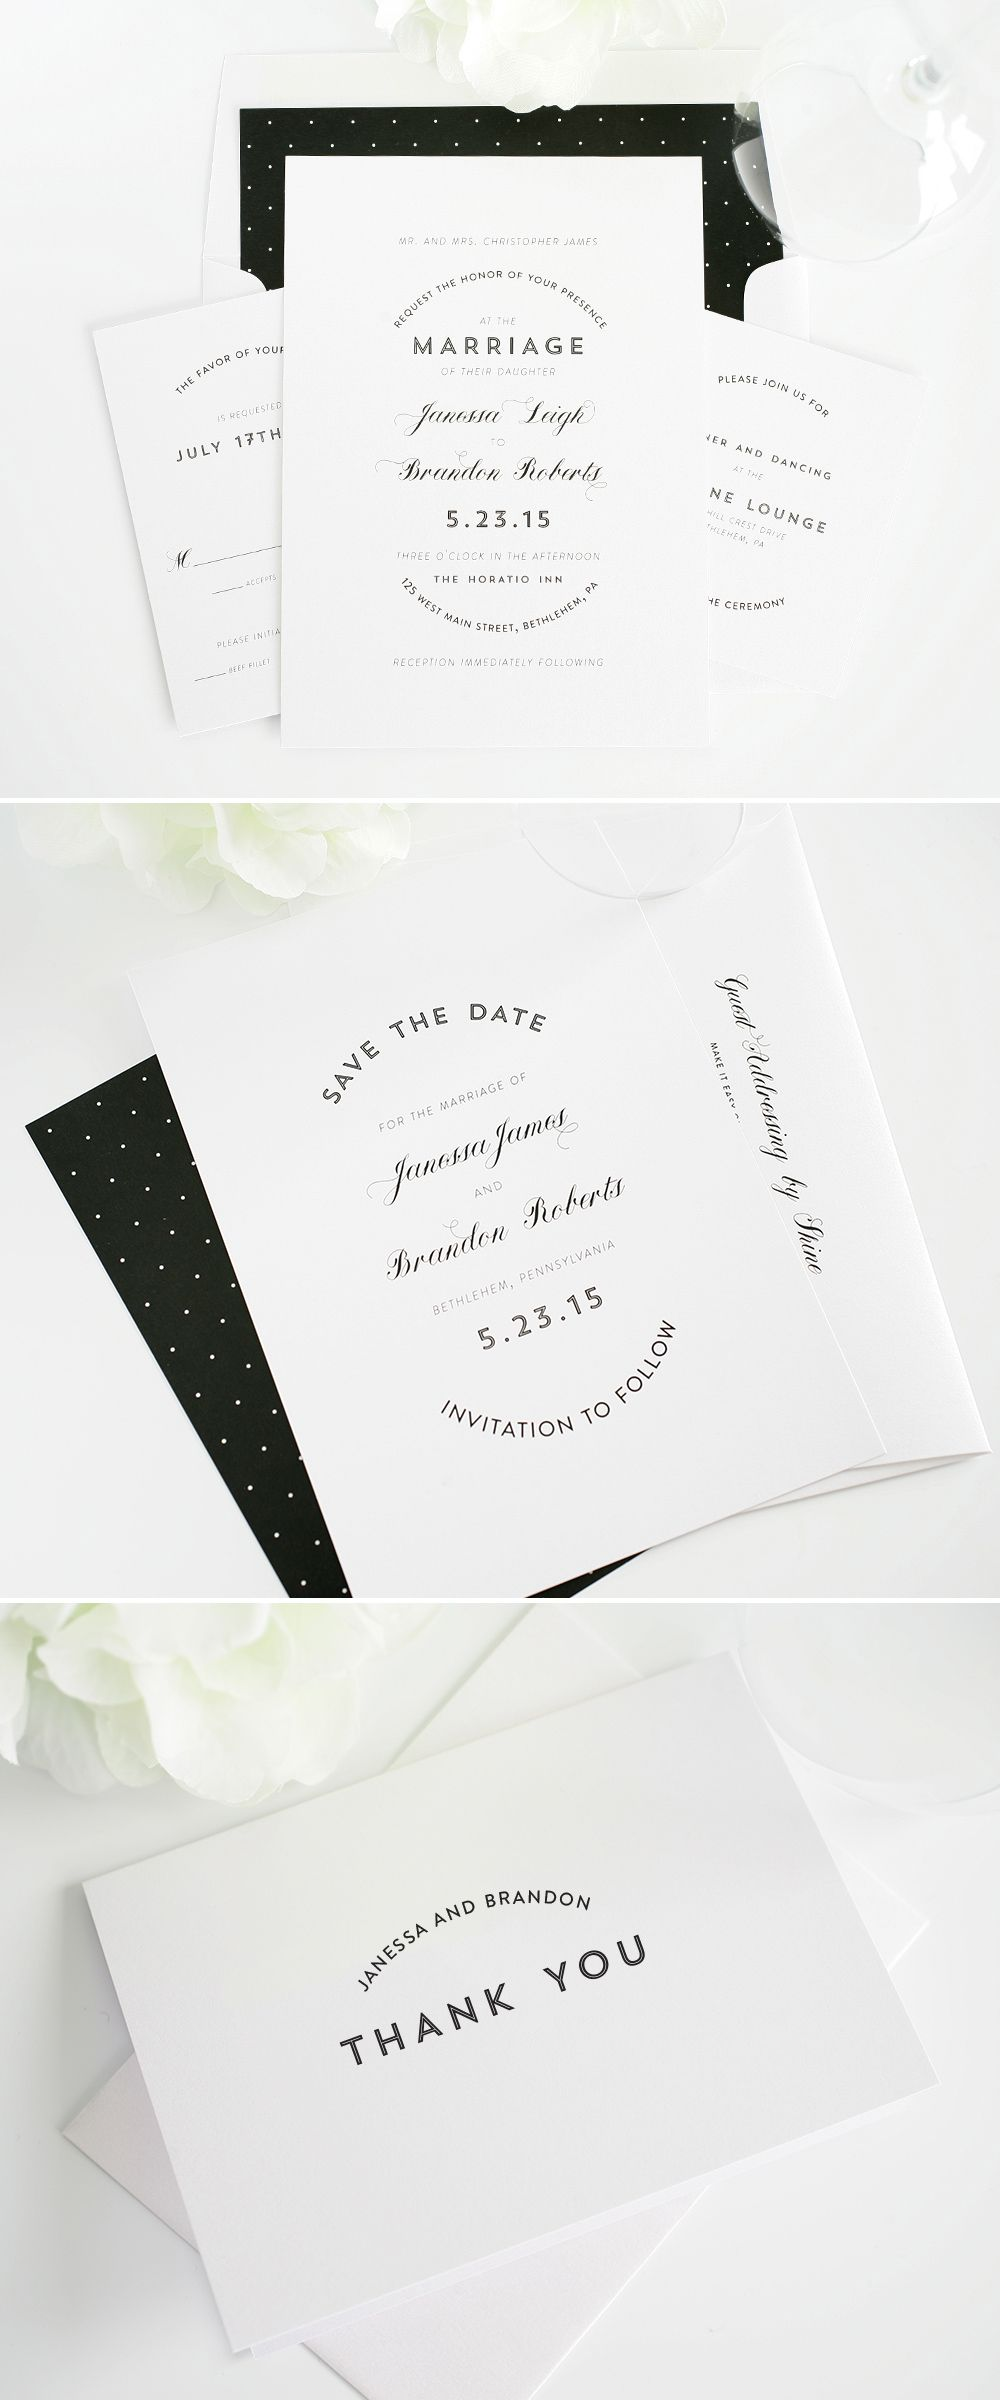 Marriage Label Wedding Invitations | Le Paperie | Pinterest | Slate ...